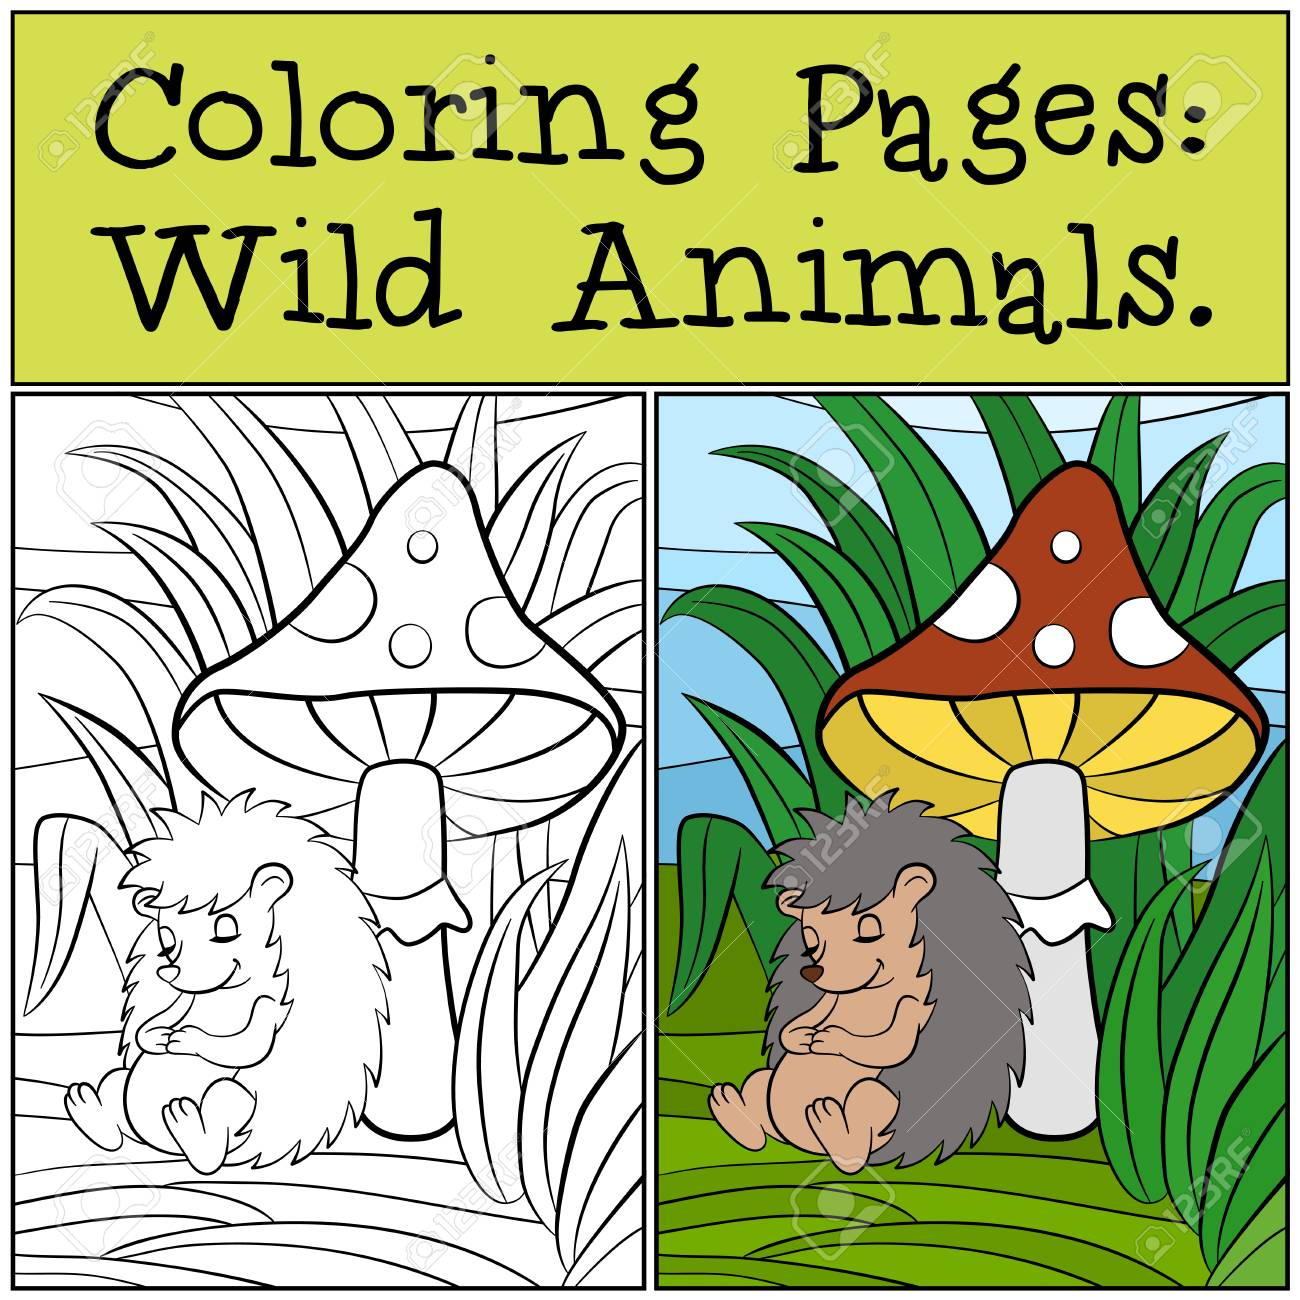 Coloring Pages: Wild Animals. Little Cute Hedgehog Sleeps Near ...